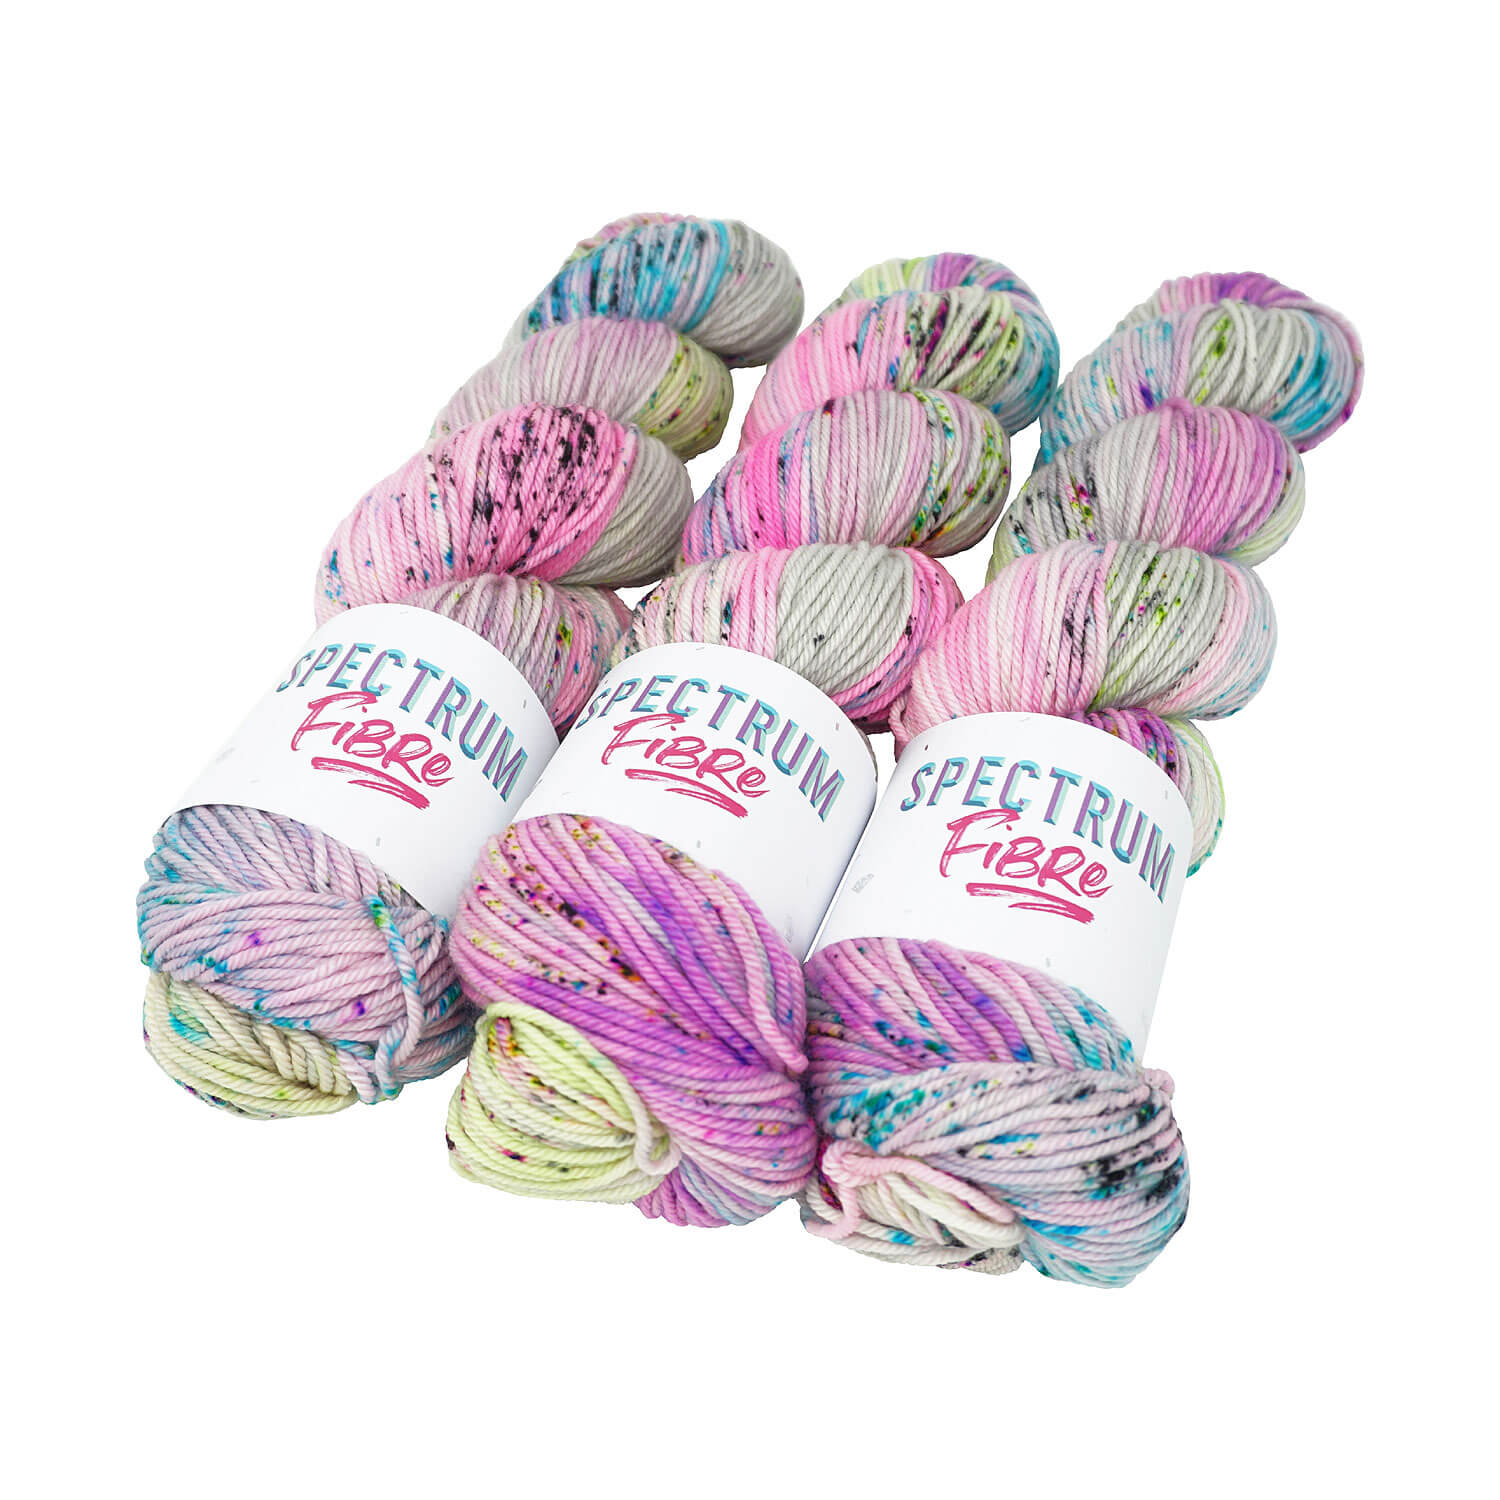 Spectrum Fibre Yarns